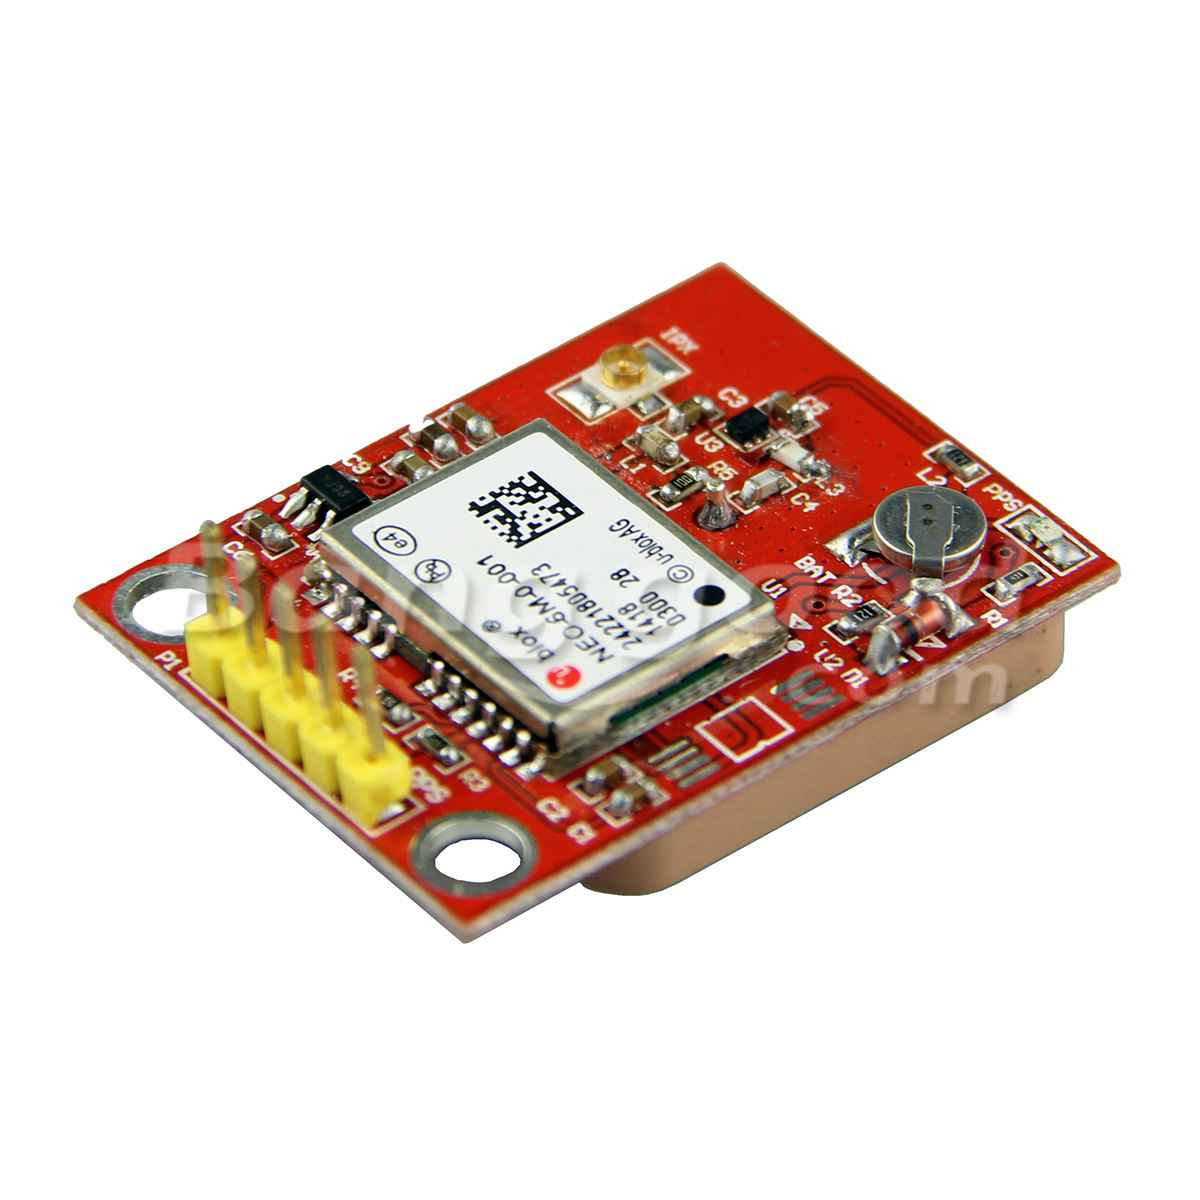 GPS Module Comes 25mm X 25mm Ceramic Passive Antenna For Raspberry Pi 2/B+